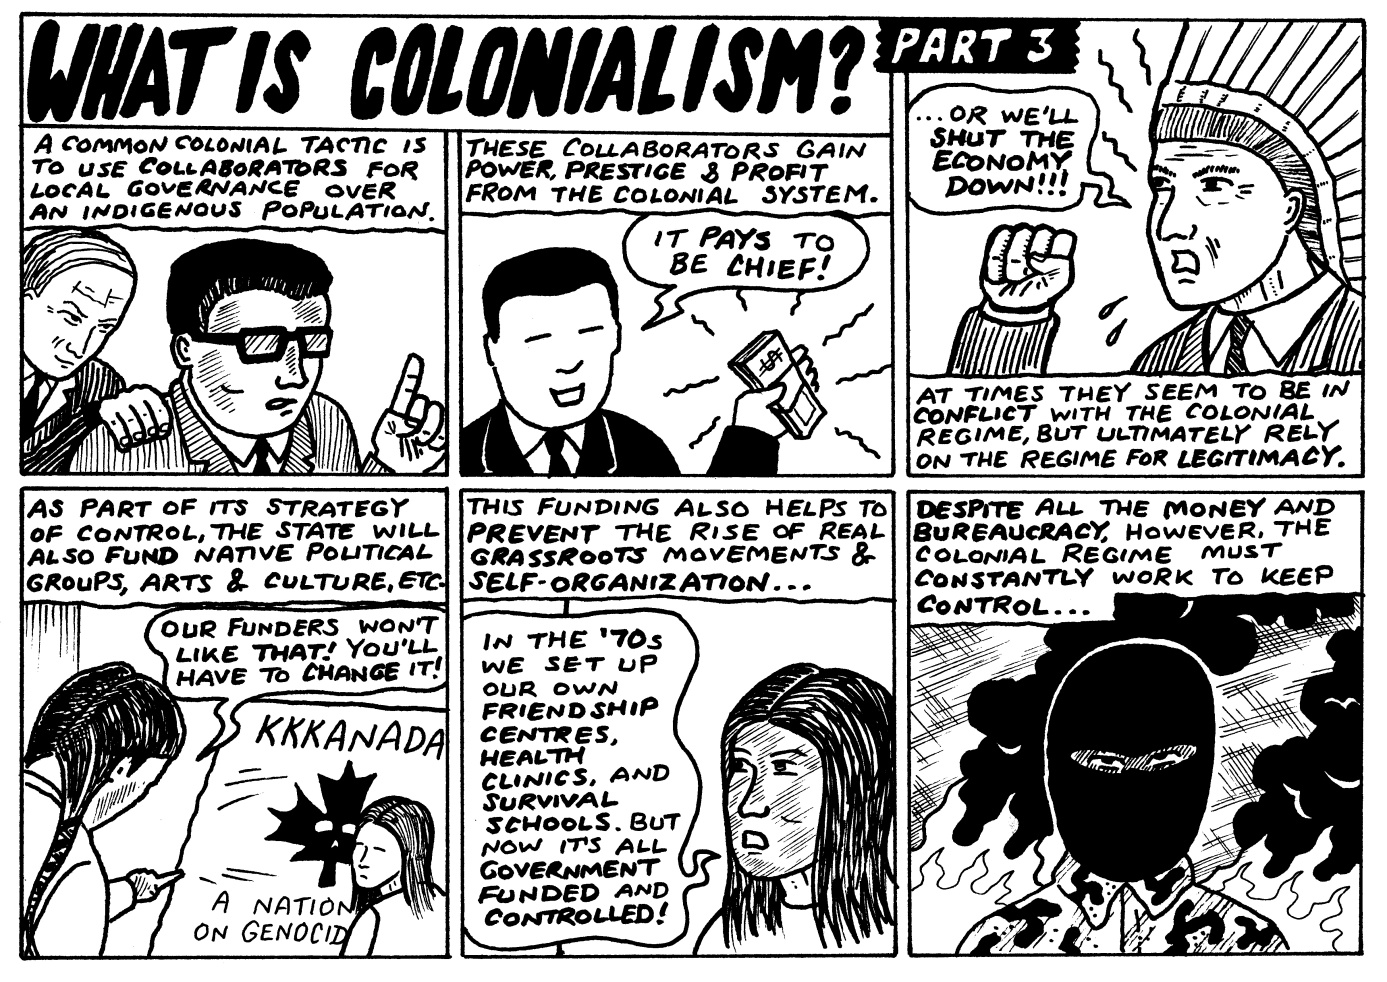 https://warriorpublications.files.wordpress.com/2014/10/colonialism-comic-3.jpg?w=1387&h=983